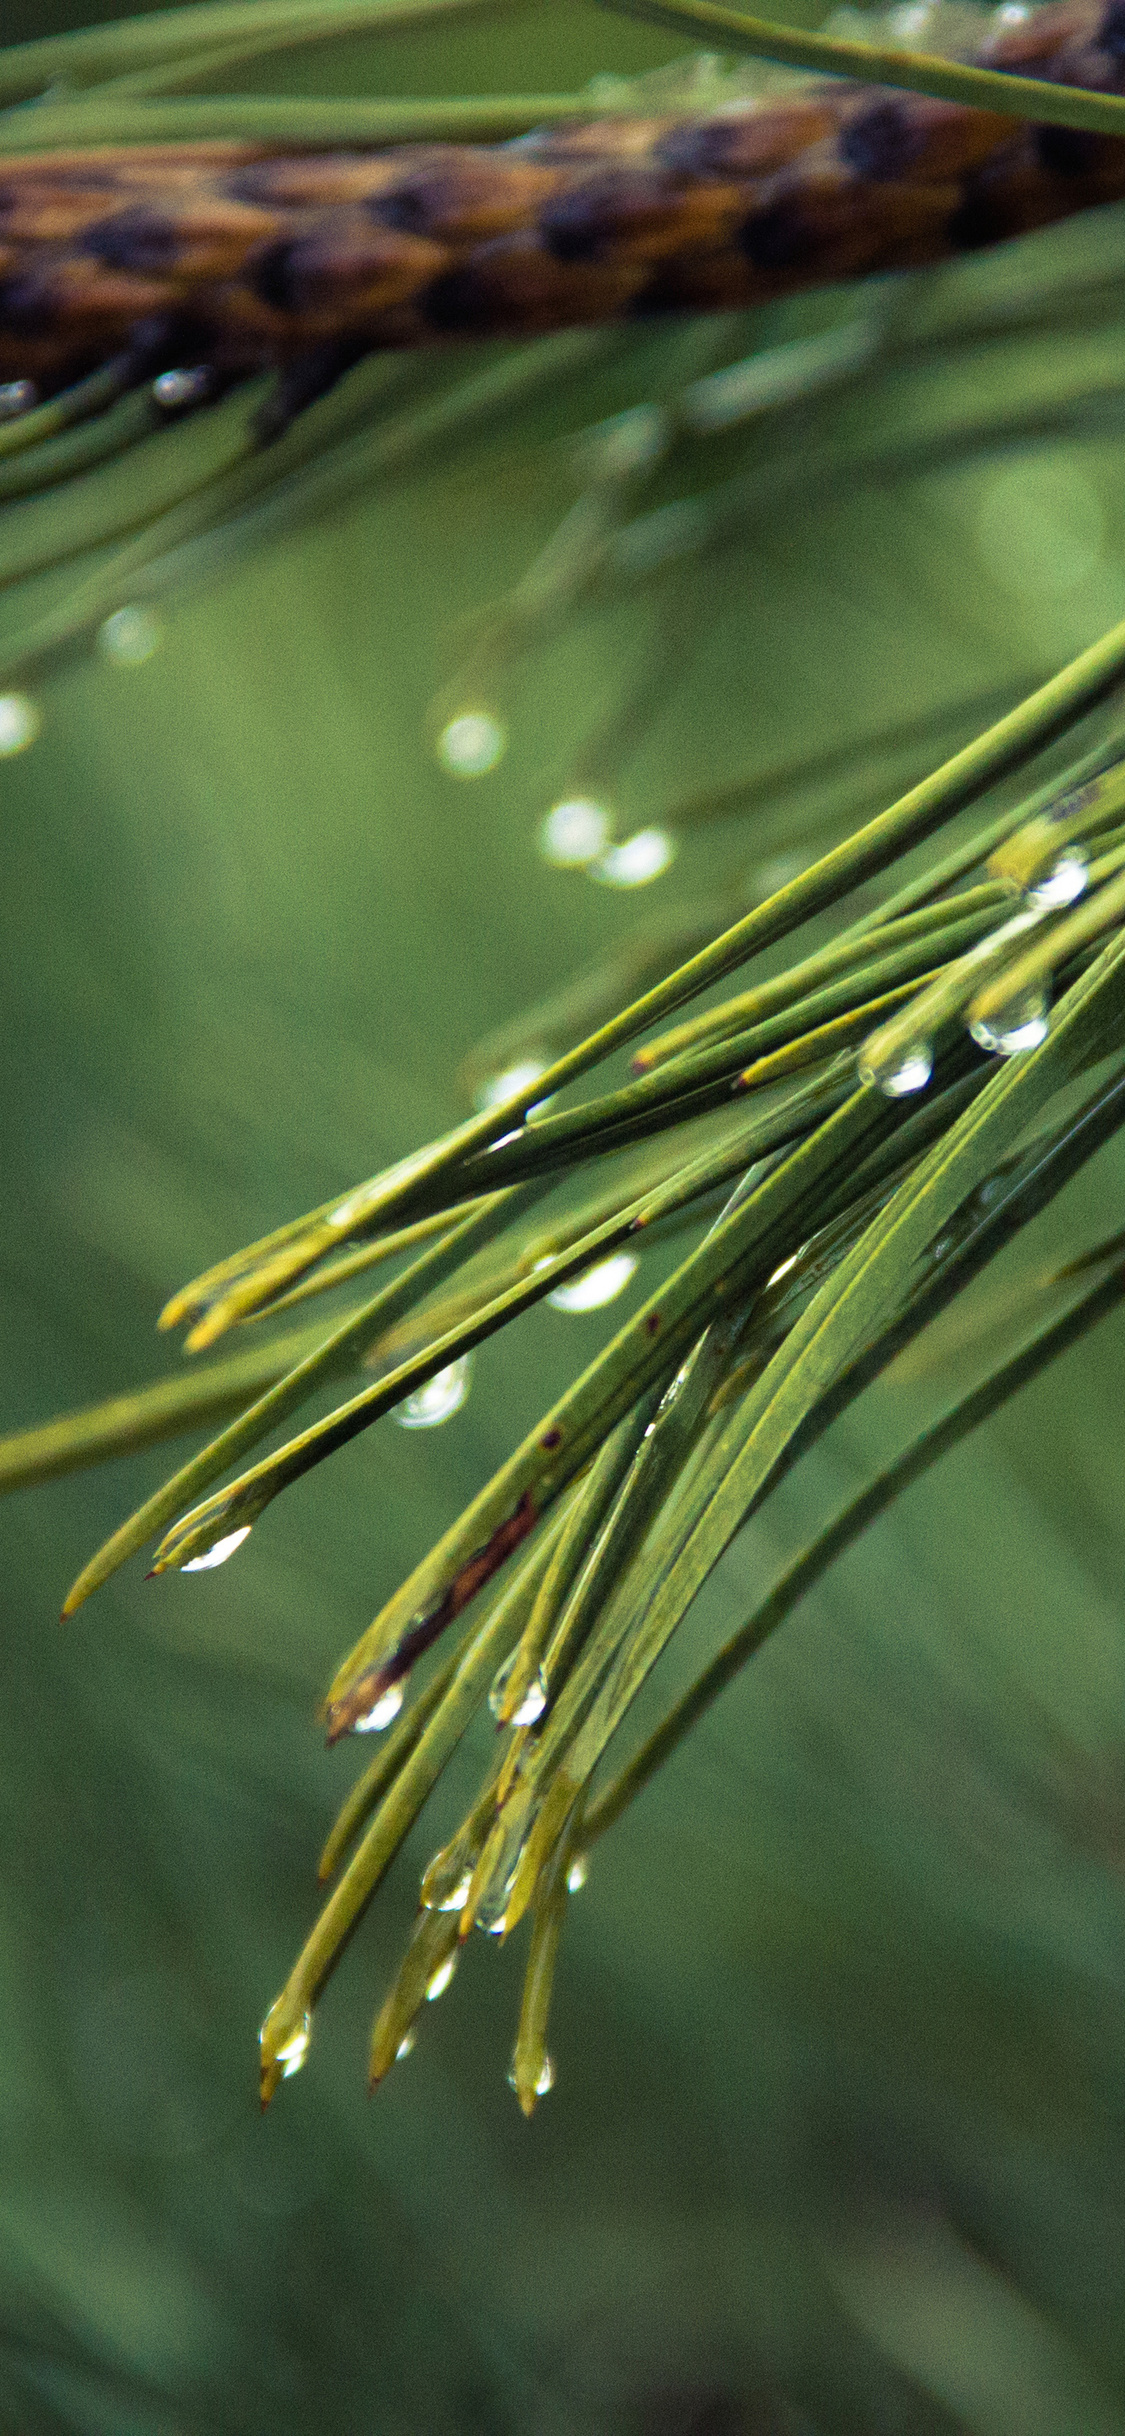 1125x2436 Water Drops On Green Pine 4k Iphone Xs Iphone 10